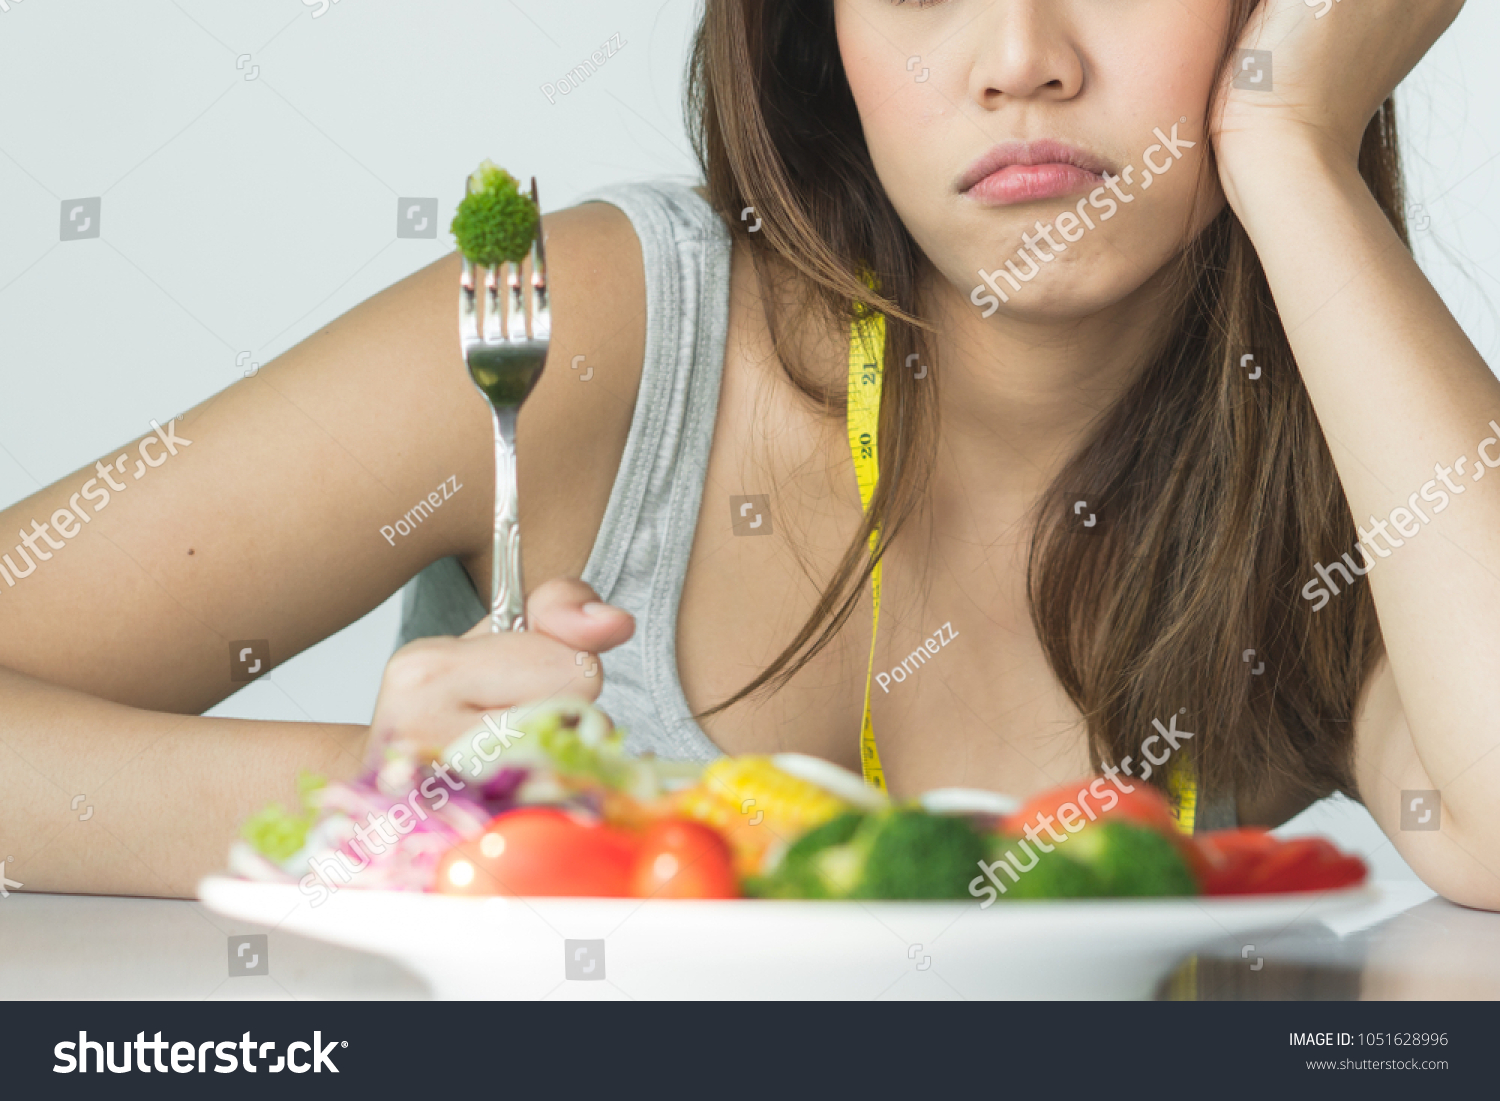 unhappy asian women is on dieting time looking at broccoli on the fork. girl do not want to eat vegetables and dislike taste of broccoli. #1051628996